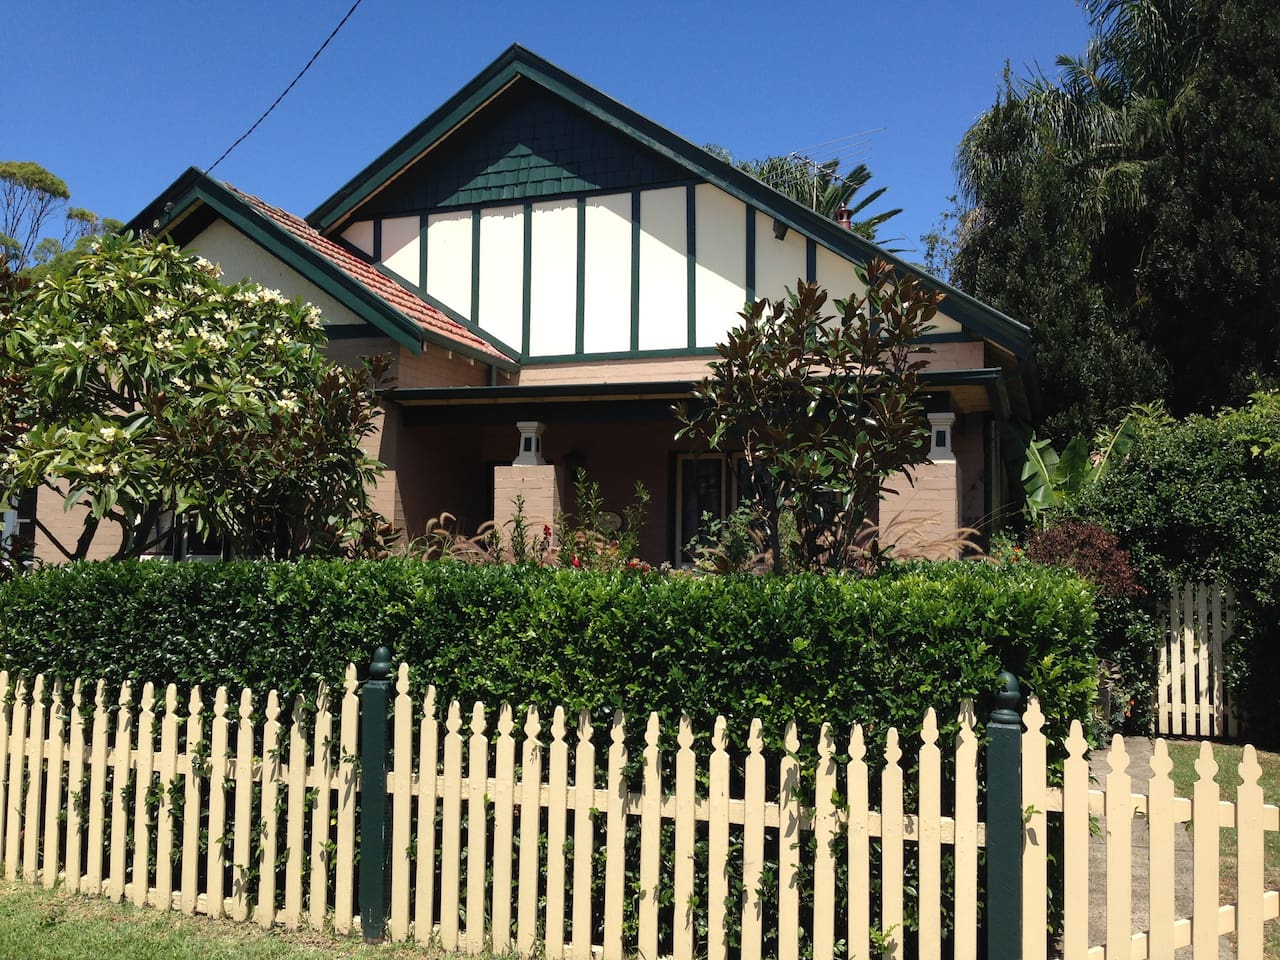 Beautiful 1910 Edwardian house in Manly area